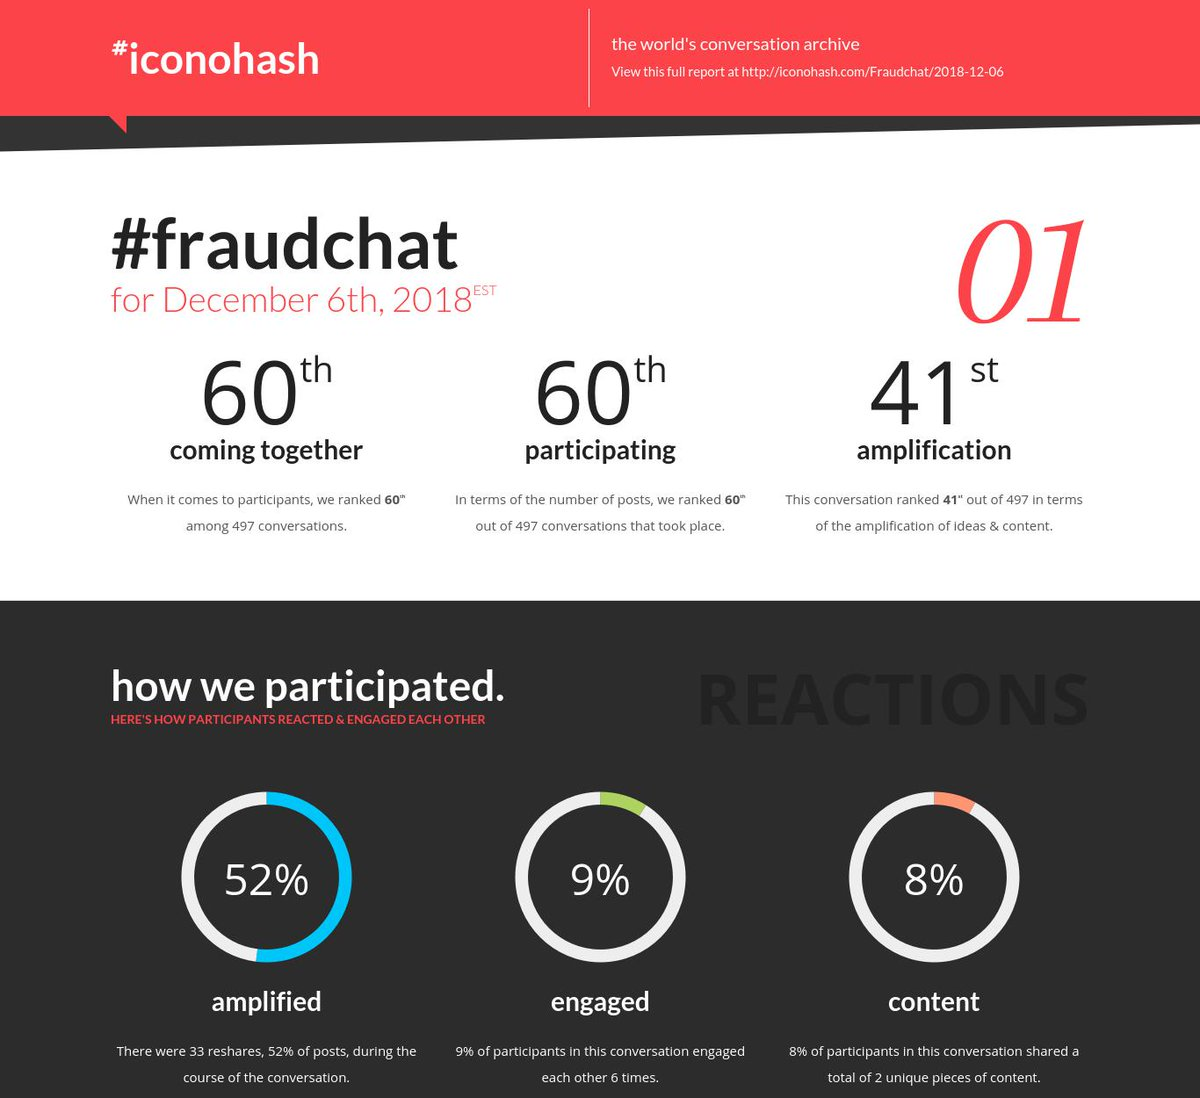 Your daily conversation report is ready for #Fraudchat for Dec 6th https://t.co/tY2okcxWwv https://t.co/mt2qI7QOGP